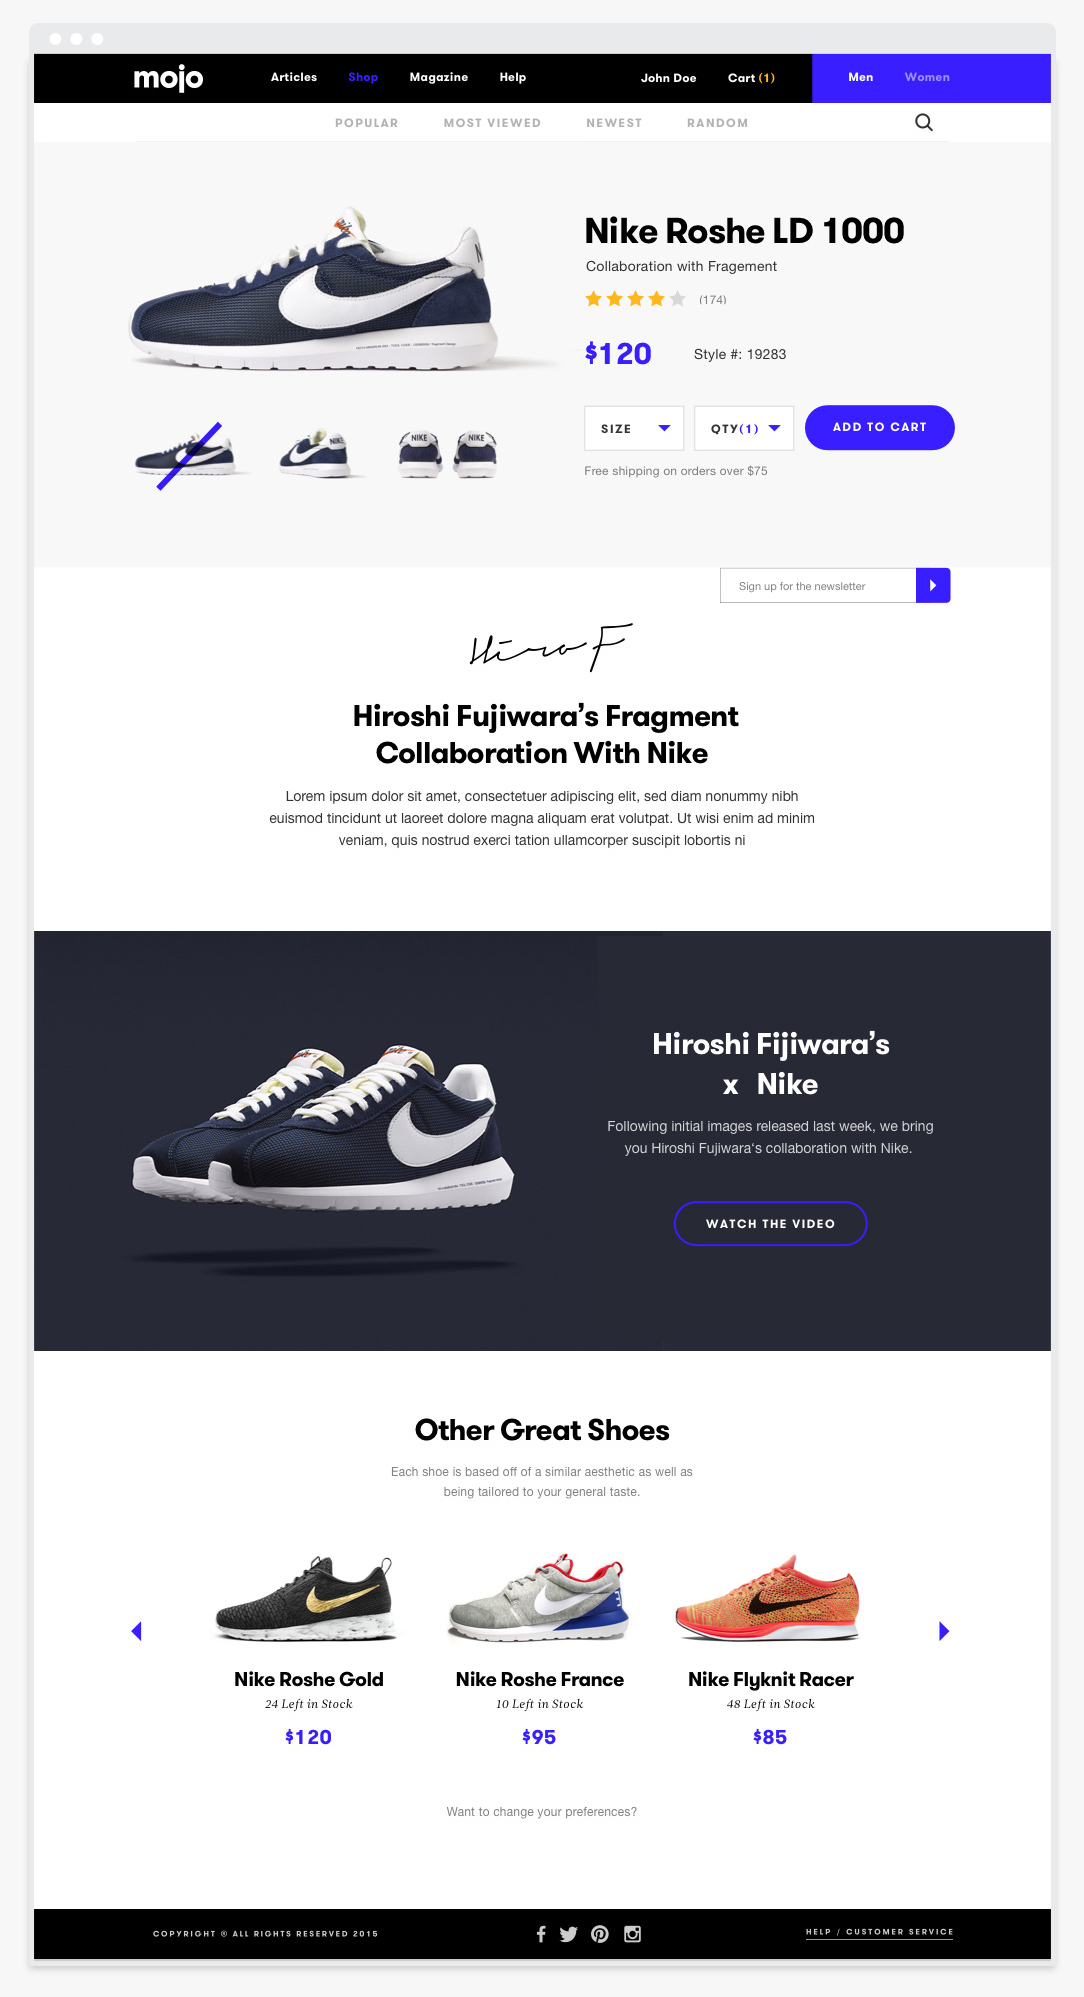 Product-Details-Page-2.jpg